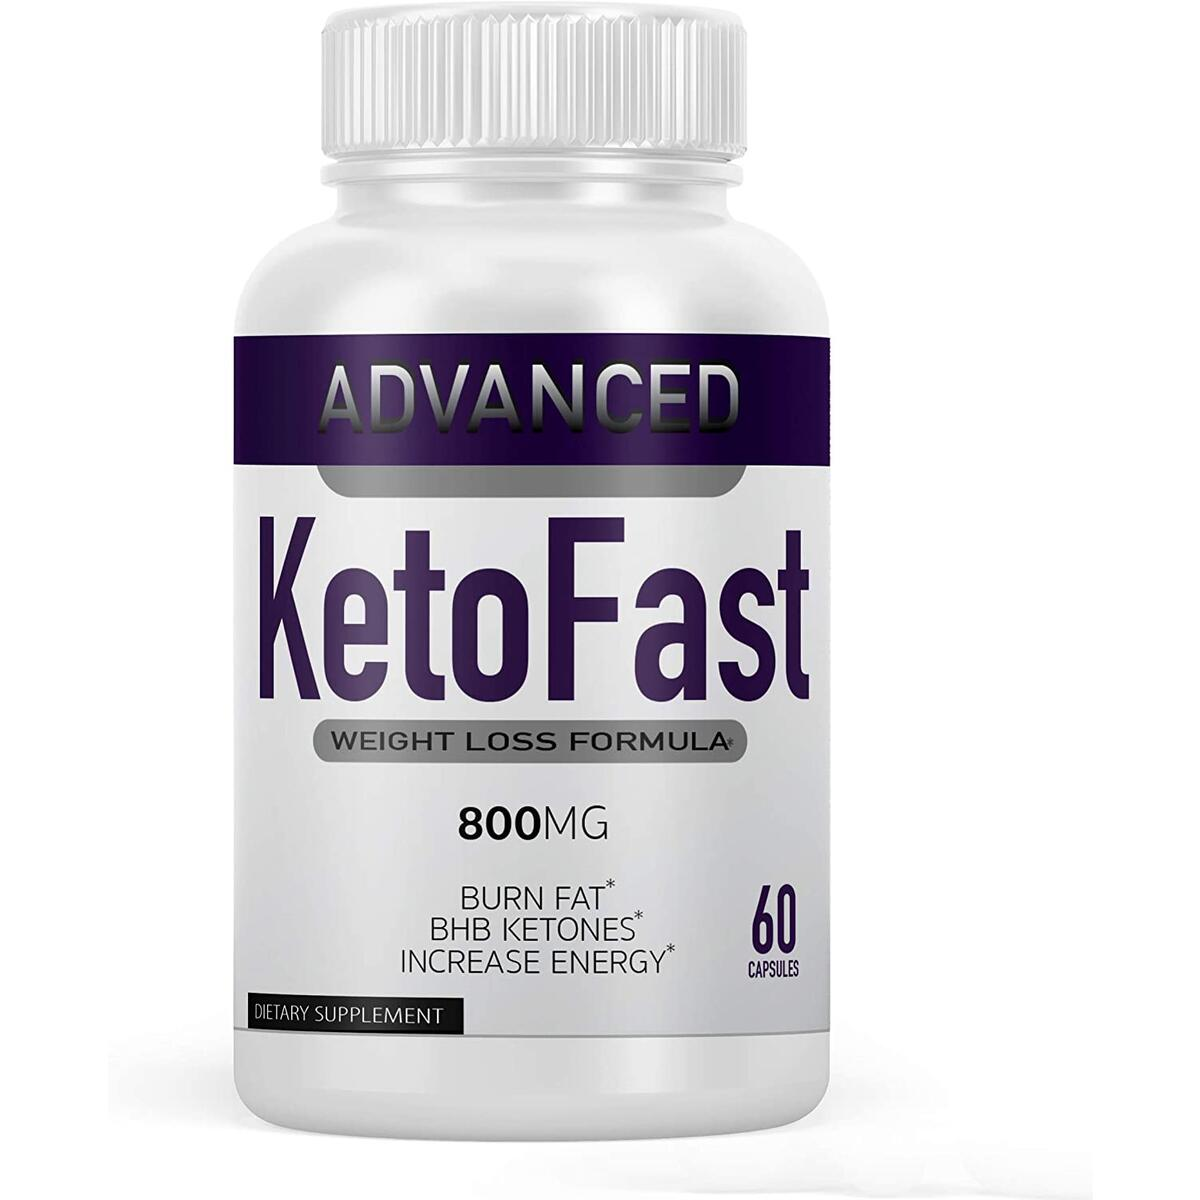 Keto Fast Diet Pills, Keto Fast Burn Weight Management Capsules 800 mg, Pure Keto Fast Supplement for Energy, Focus - BHB Ultra Boost Exogenous Ketones for Rapid Ketosis for Men Women